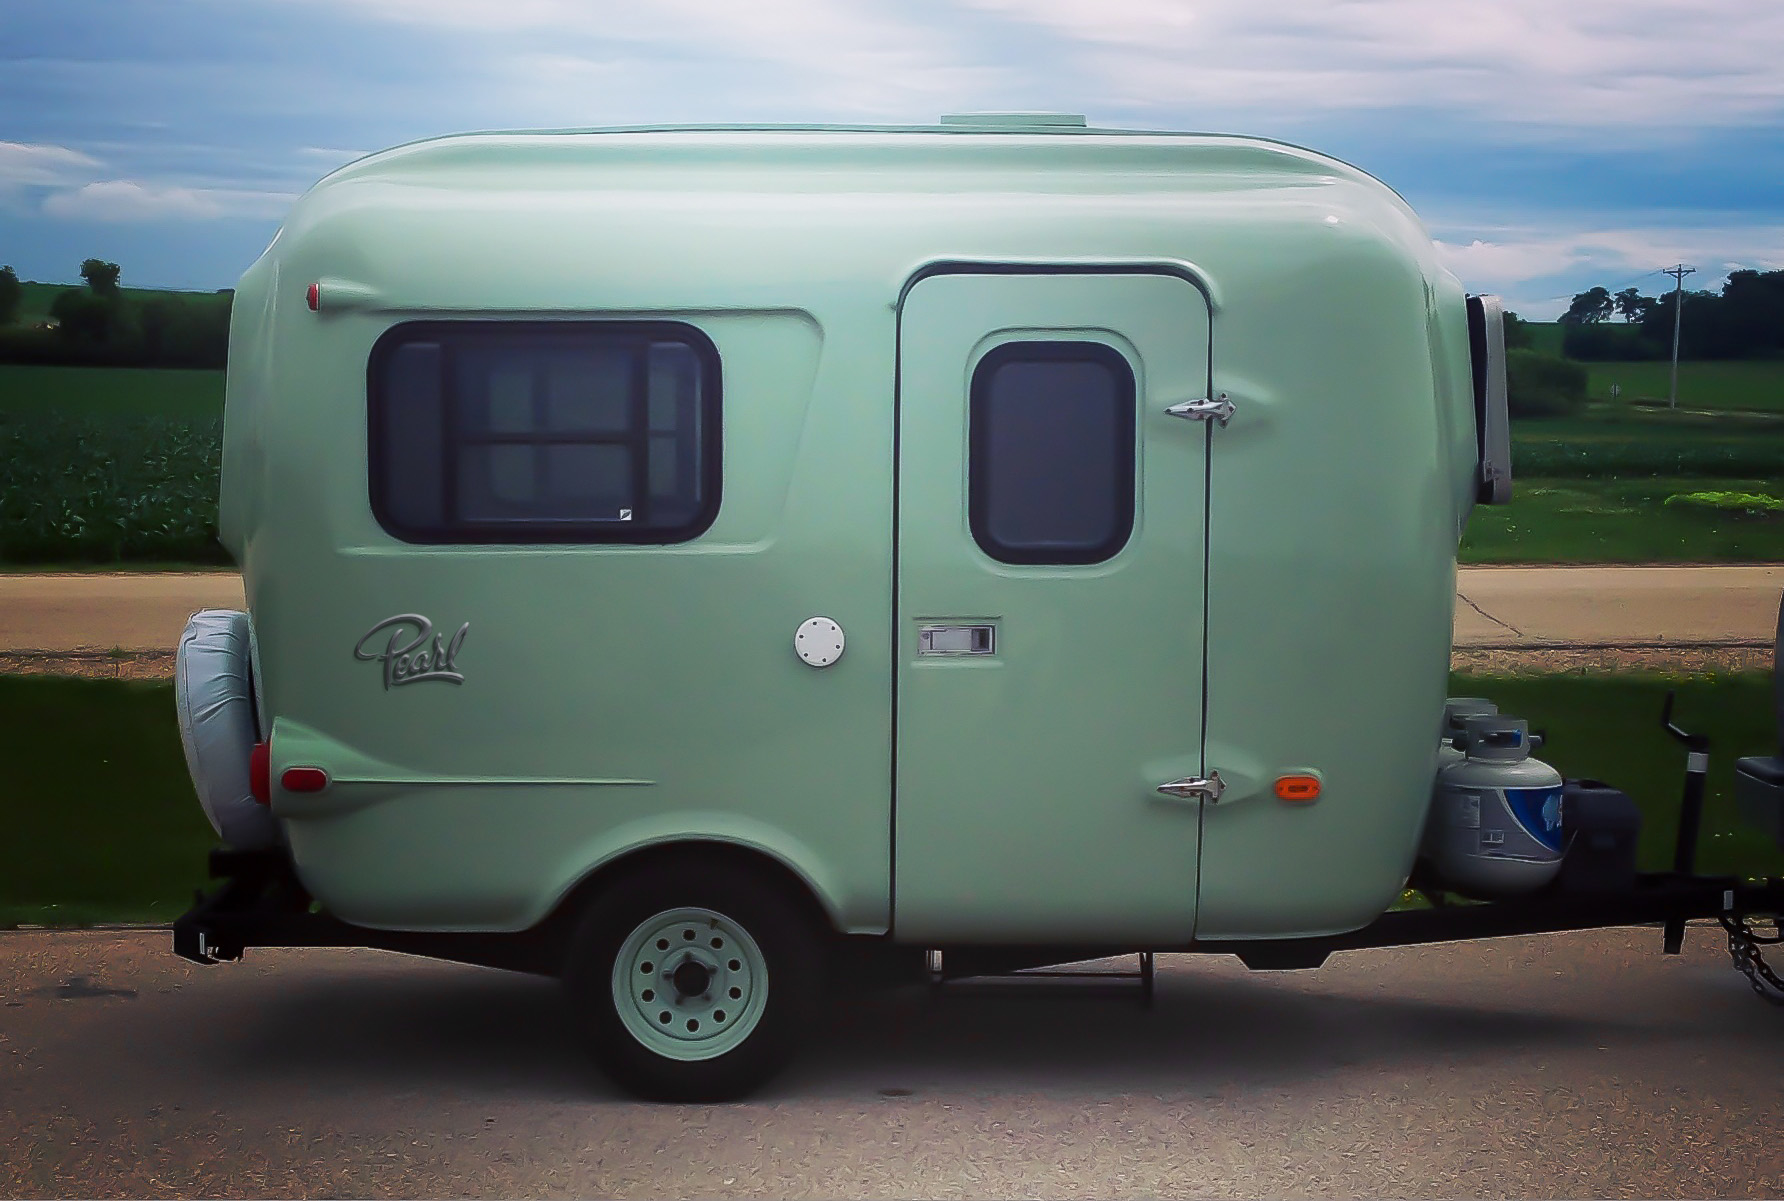 Bring Her Recently Remodeled Burro Camper Back To Life With An Emblem I Came Up This Script Identity And Had It Printed Primed Painted